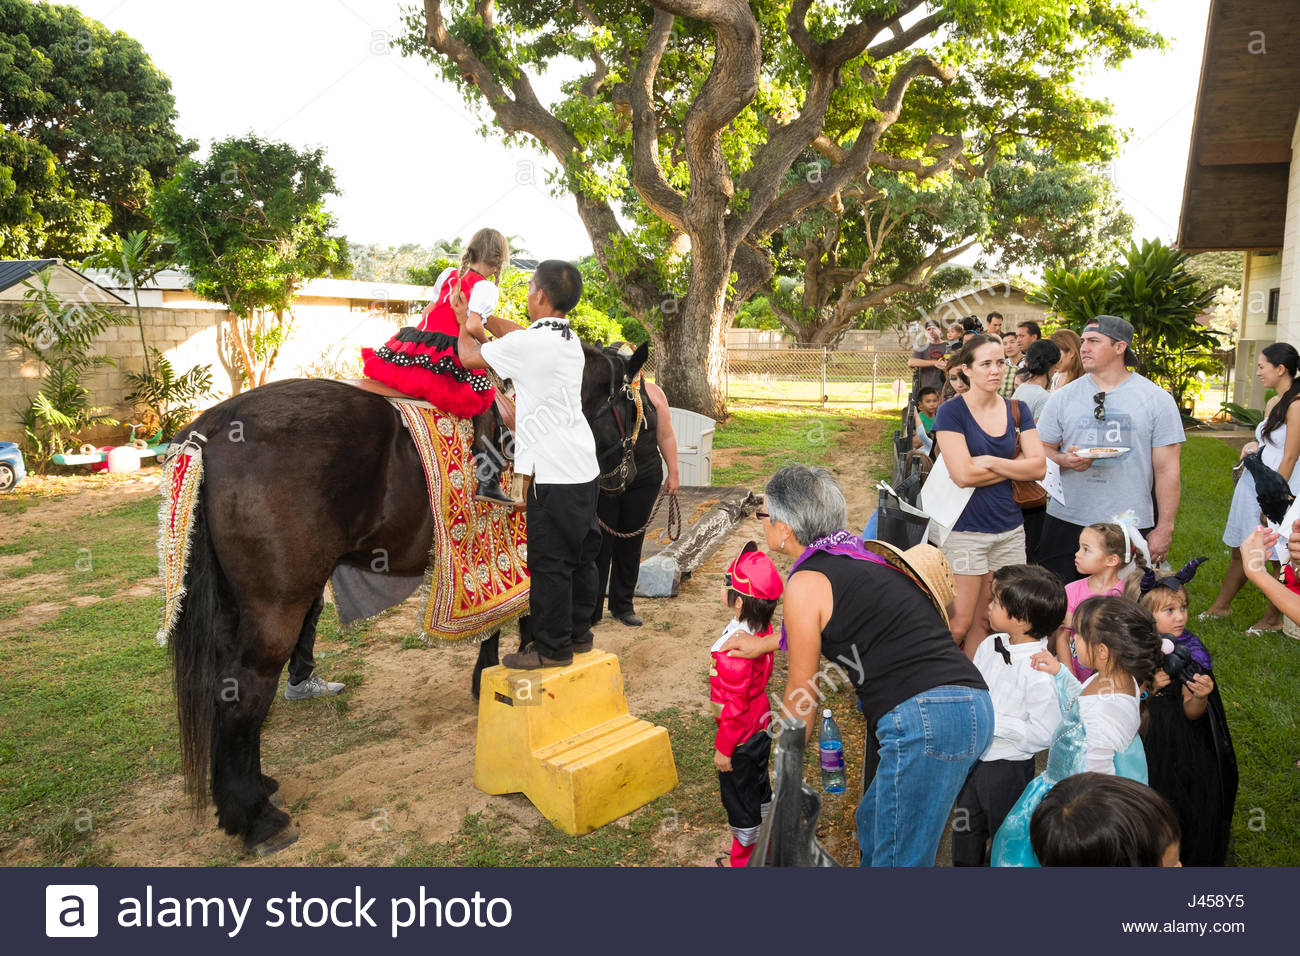 Man helping young girl onto a horse during a Halloween party Stock ...